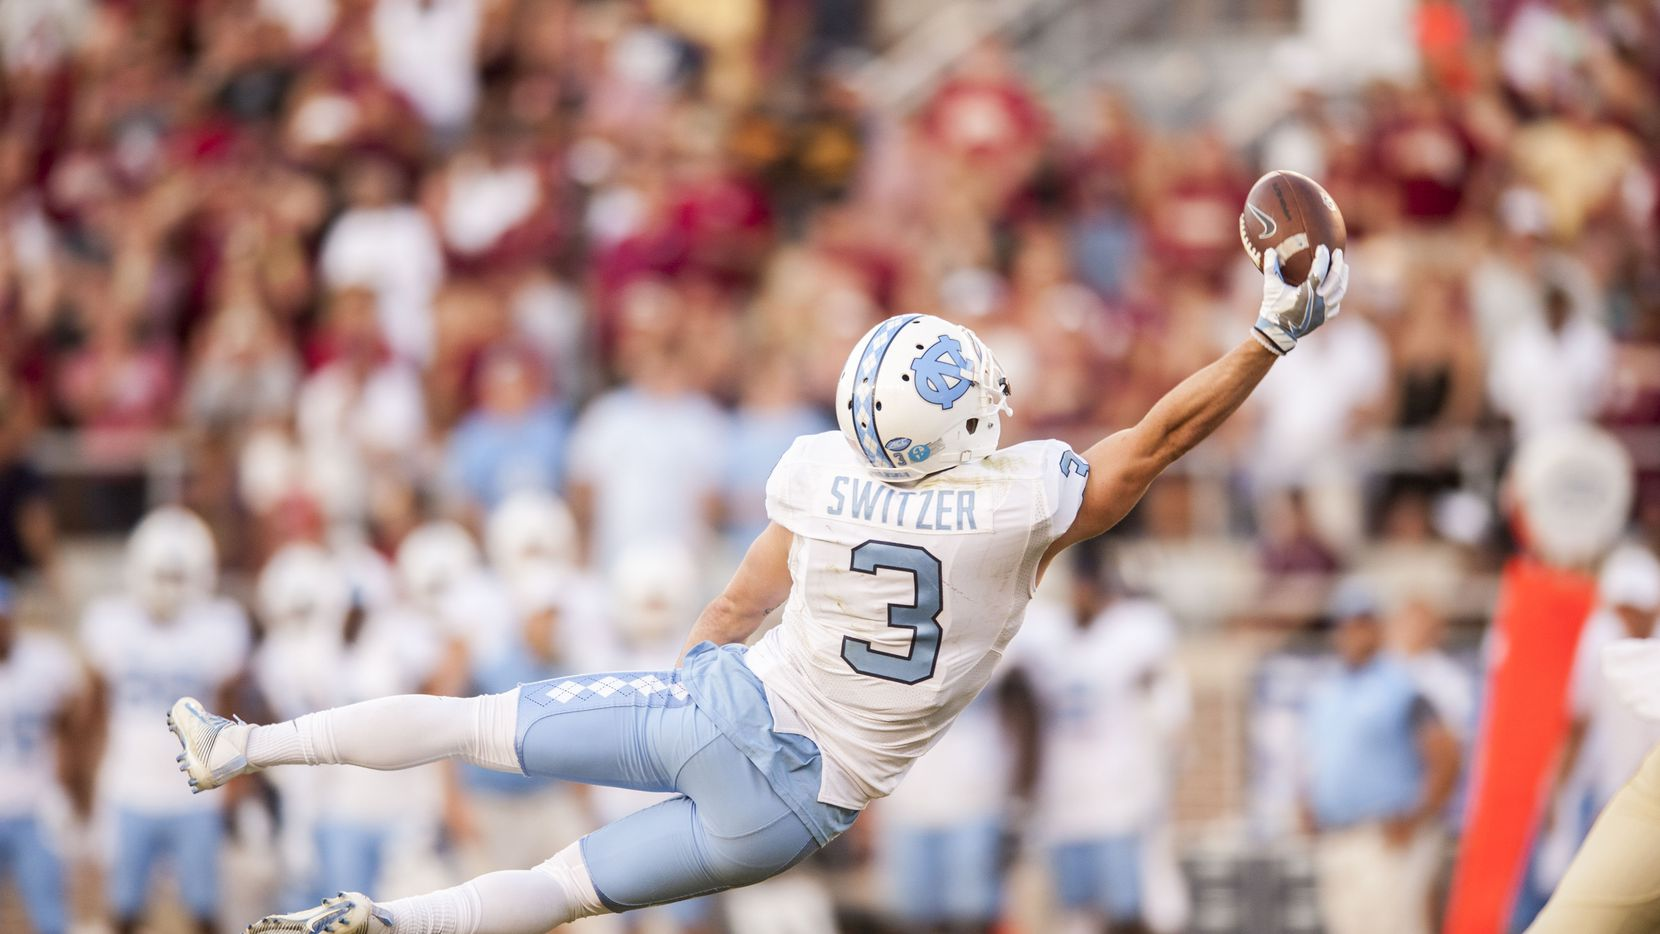 TALLAHASSEE, FL - OCTOBER 01: Ryan Switzer #3 of the North Carolina Tar Heels stretches out in an attempt to make a catch against the Florida State Seminoles at Doak Campbell Stadium on October 1, 2016 in Tallahassee, Florida. (Photo by Jeff Gammons/Getty Images)